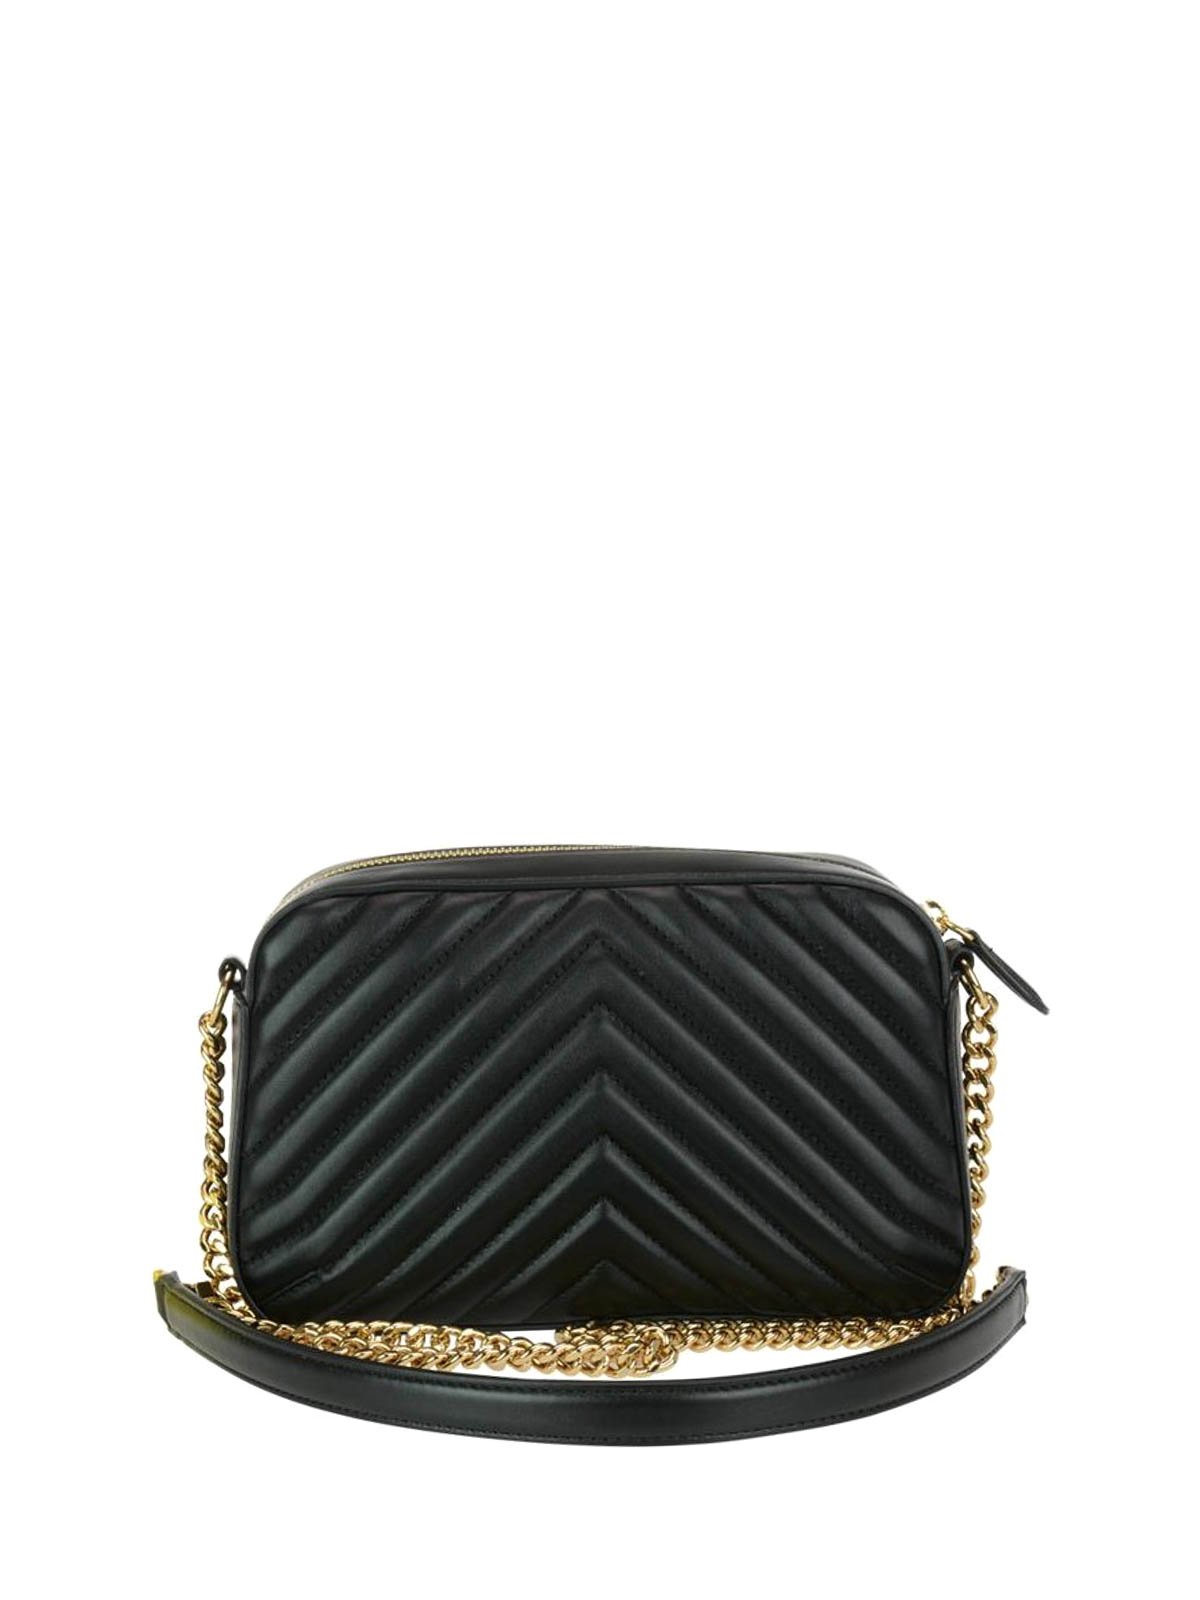 7d9ea86ff1 iKRIX STELLA McCARTNEY  cross body bags - Stella Star black quilted small  bag